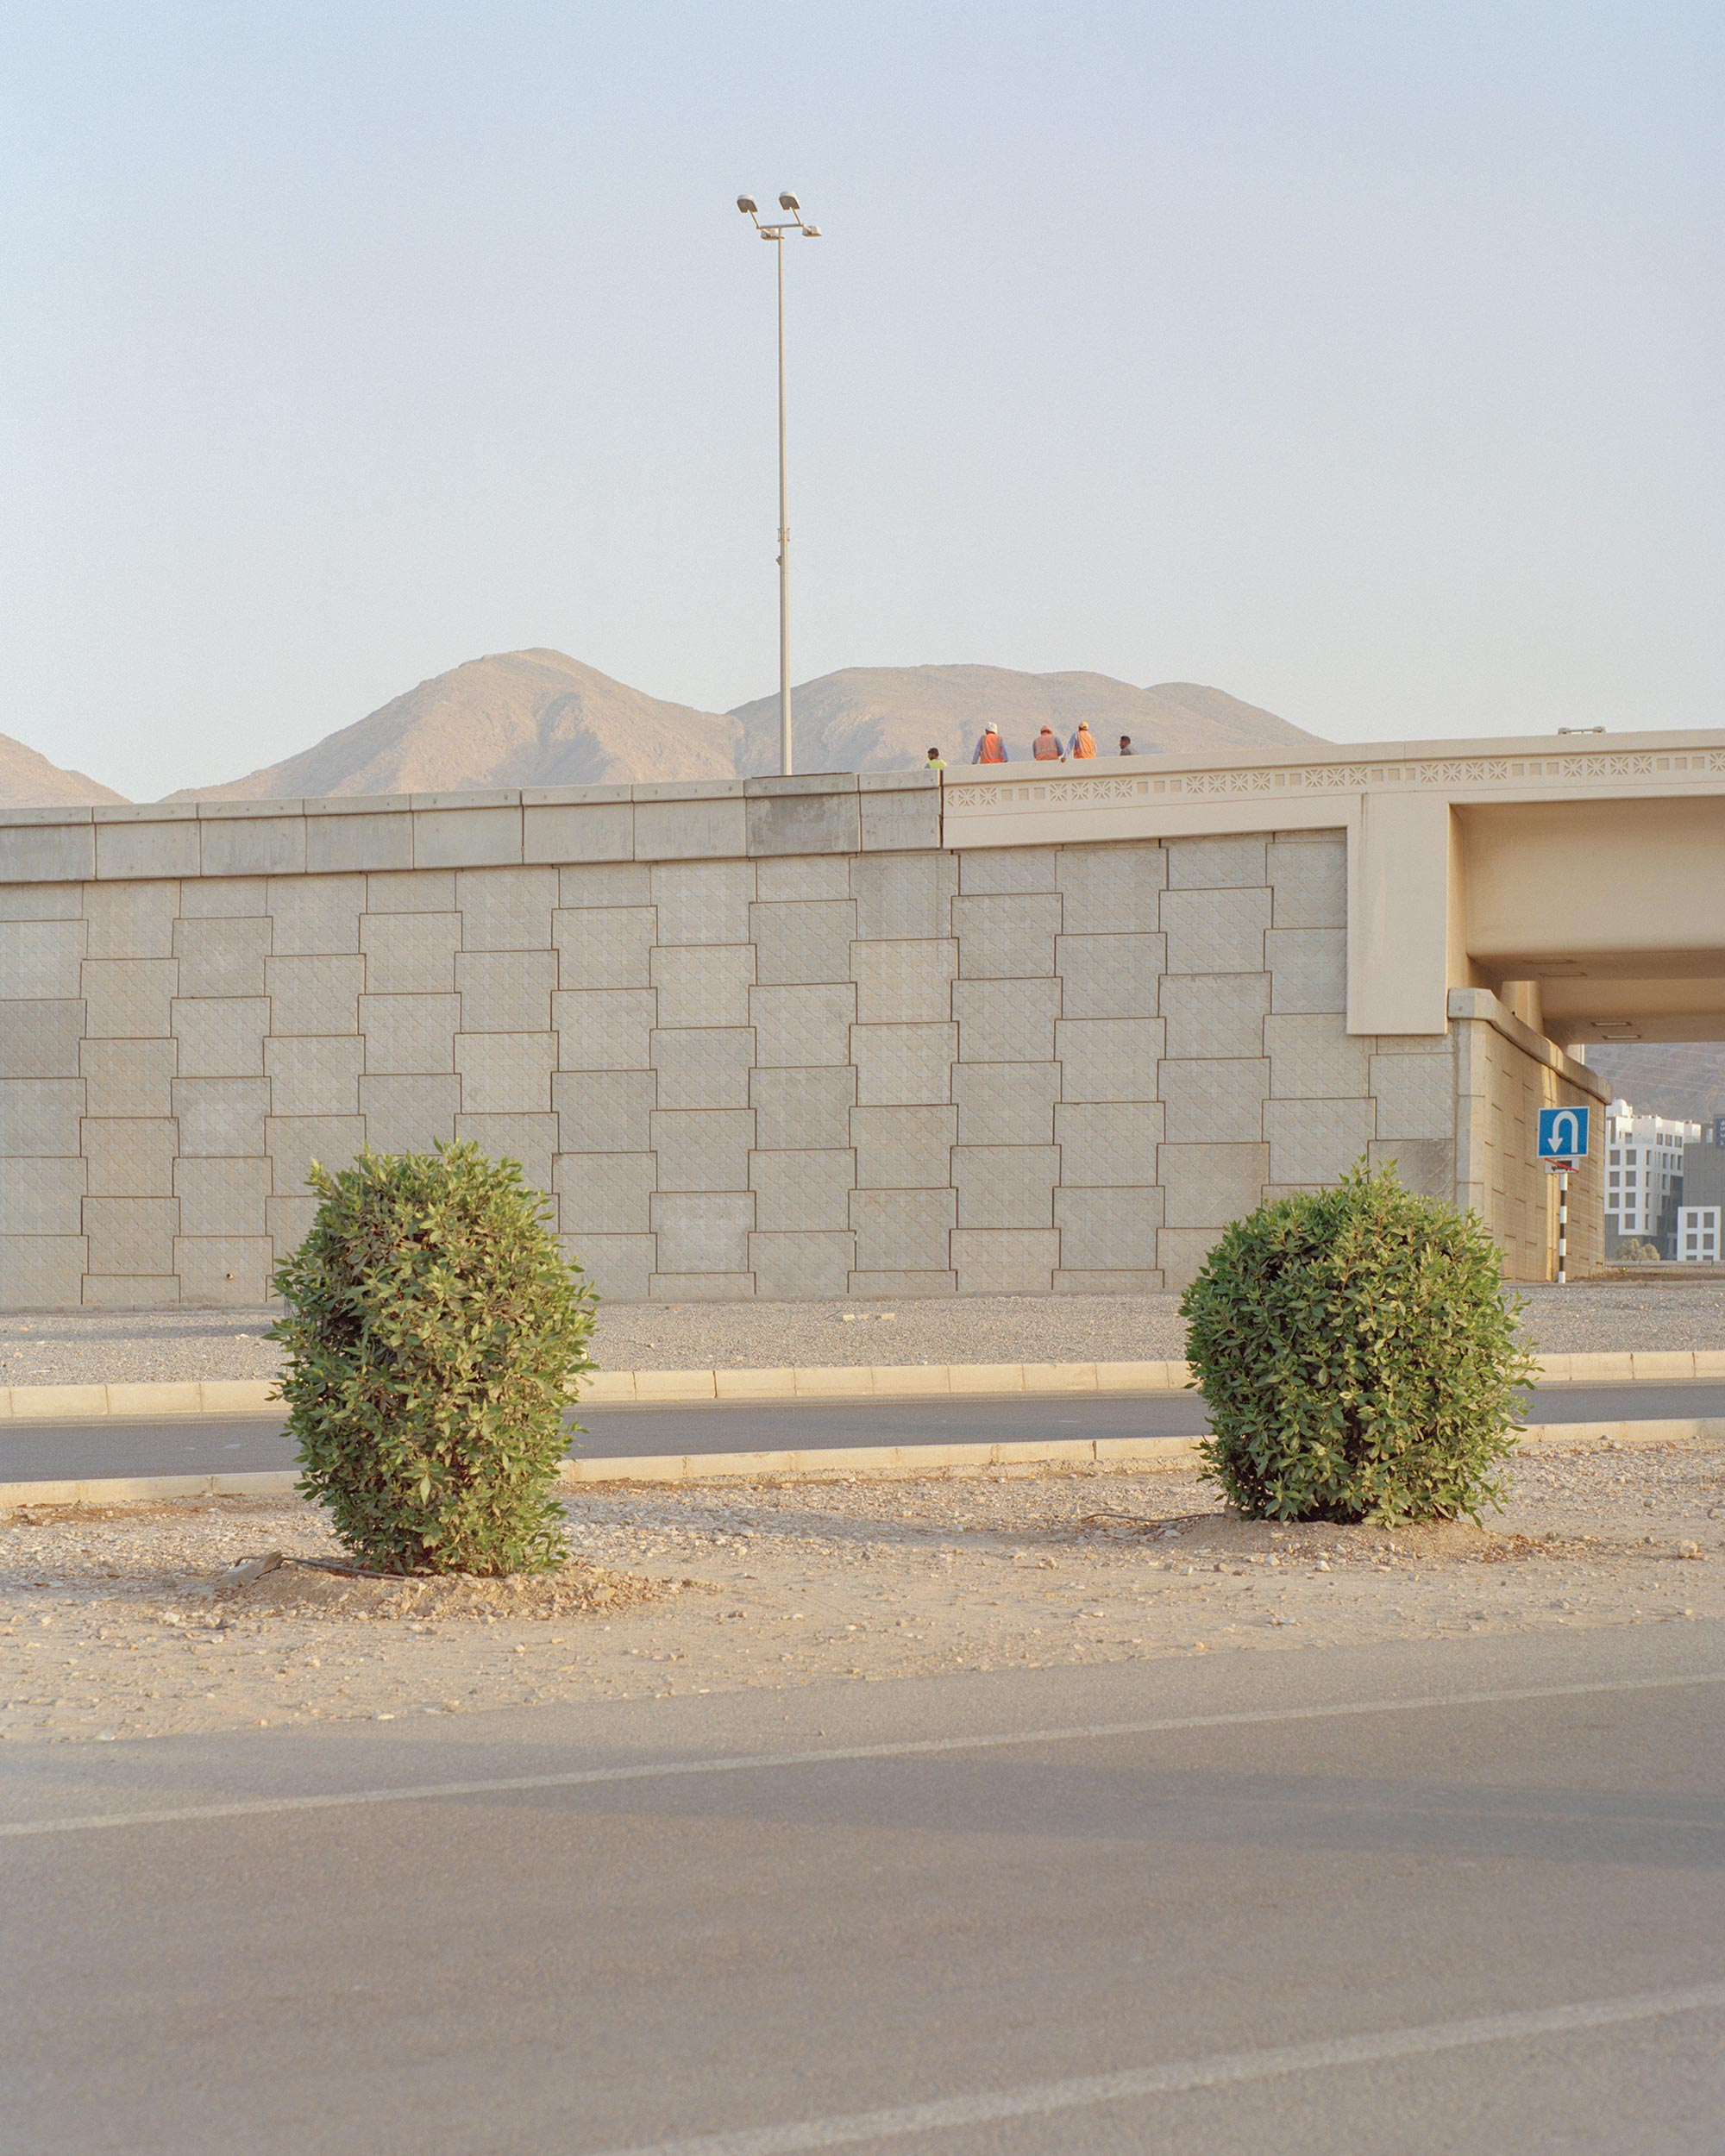 photograph of urban landscape road from series XO